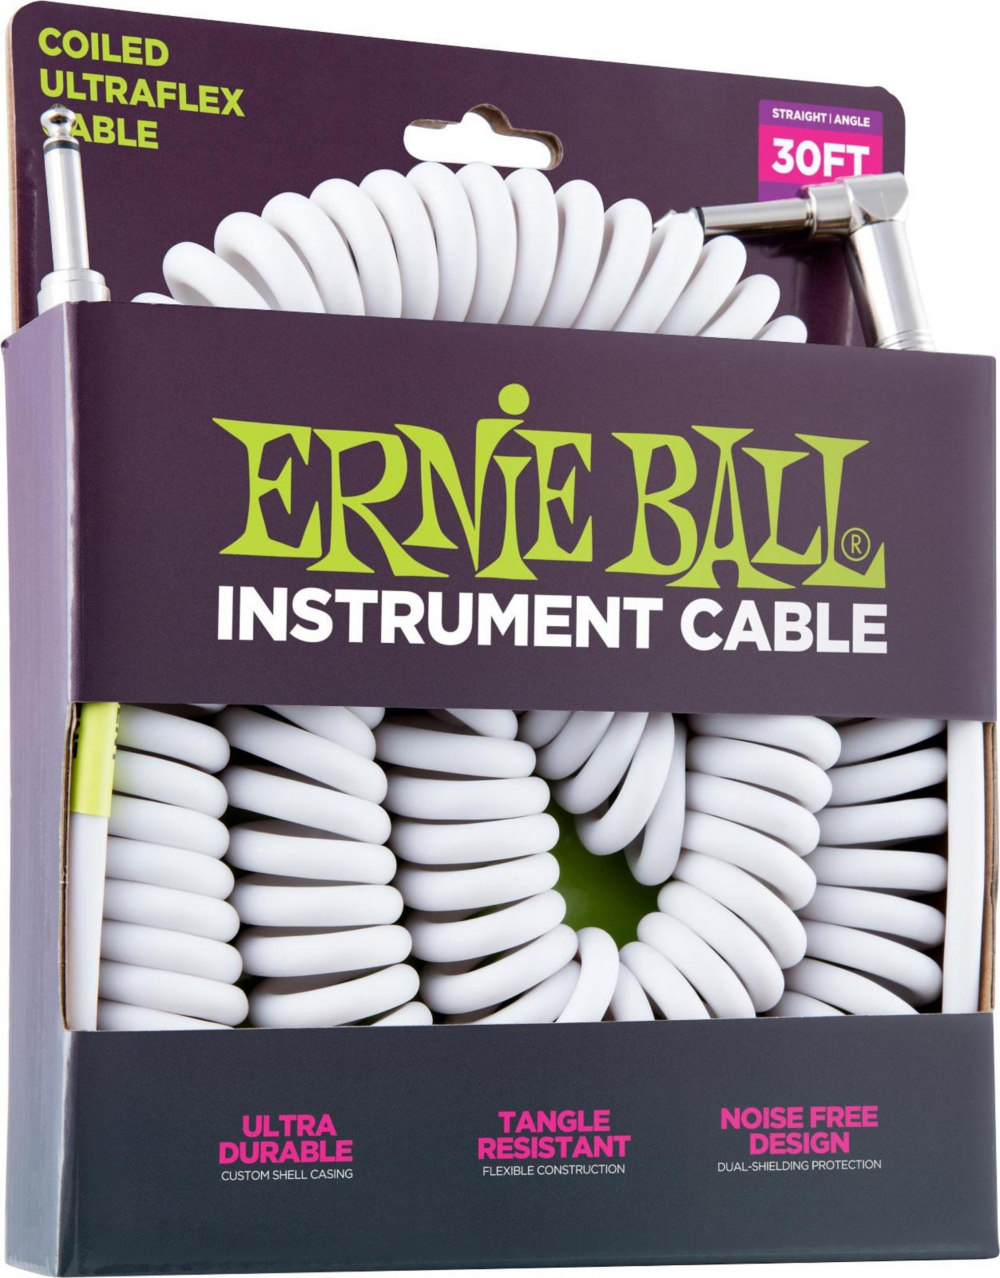 Coiled Ultraflex Straight-Angle Instrument Cable White by Ernie Ball